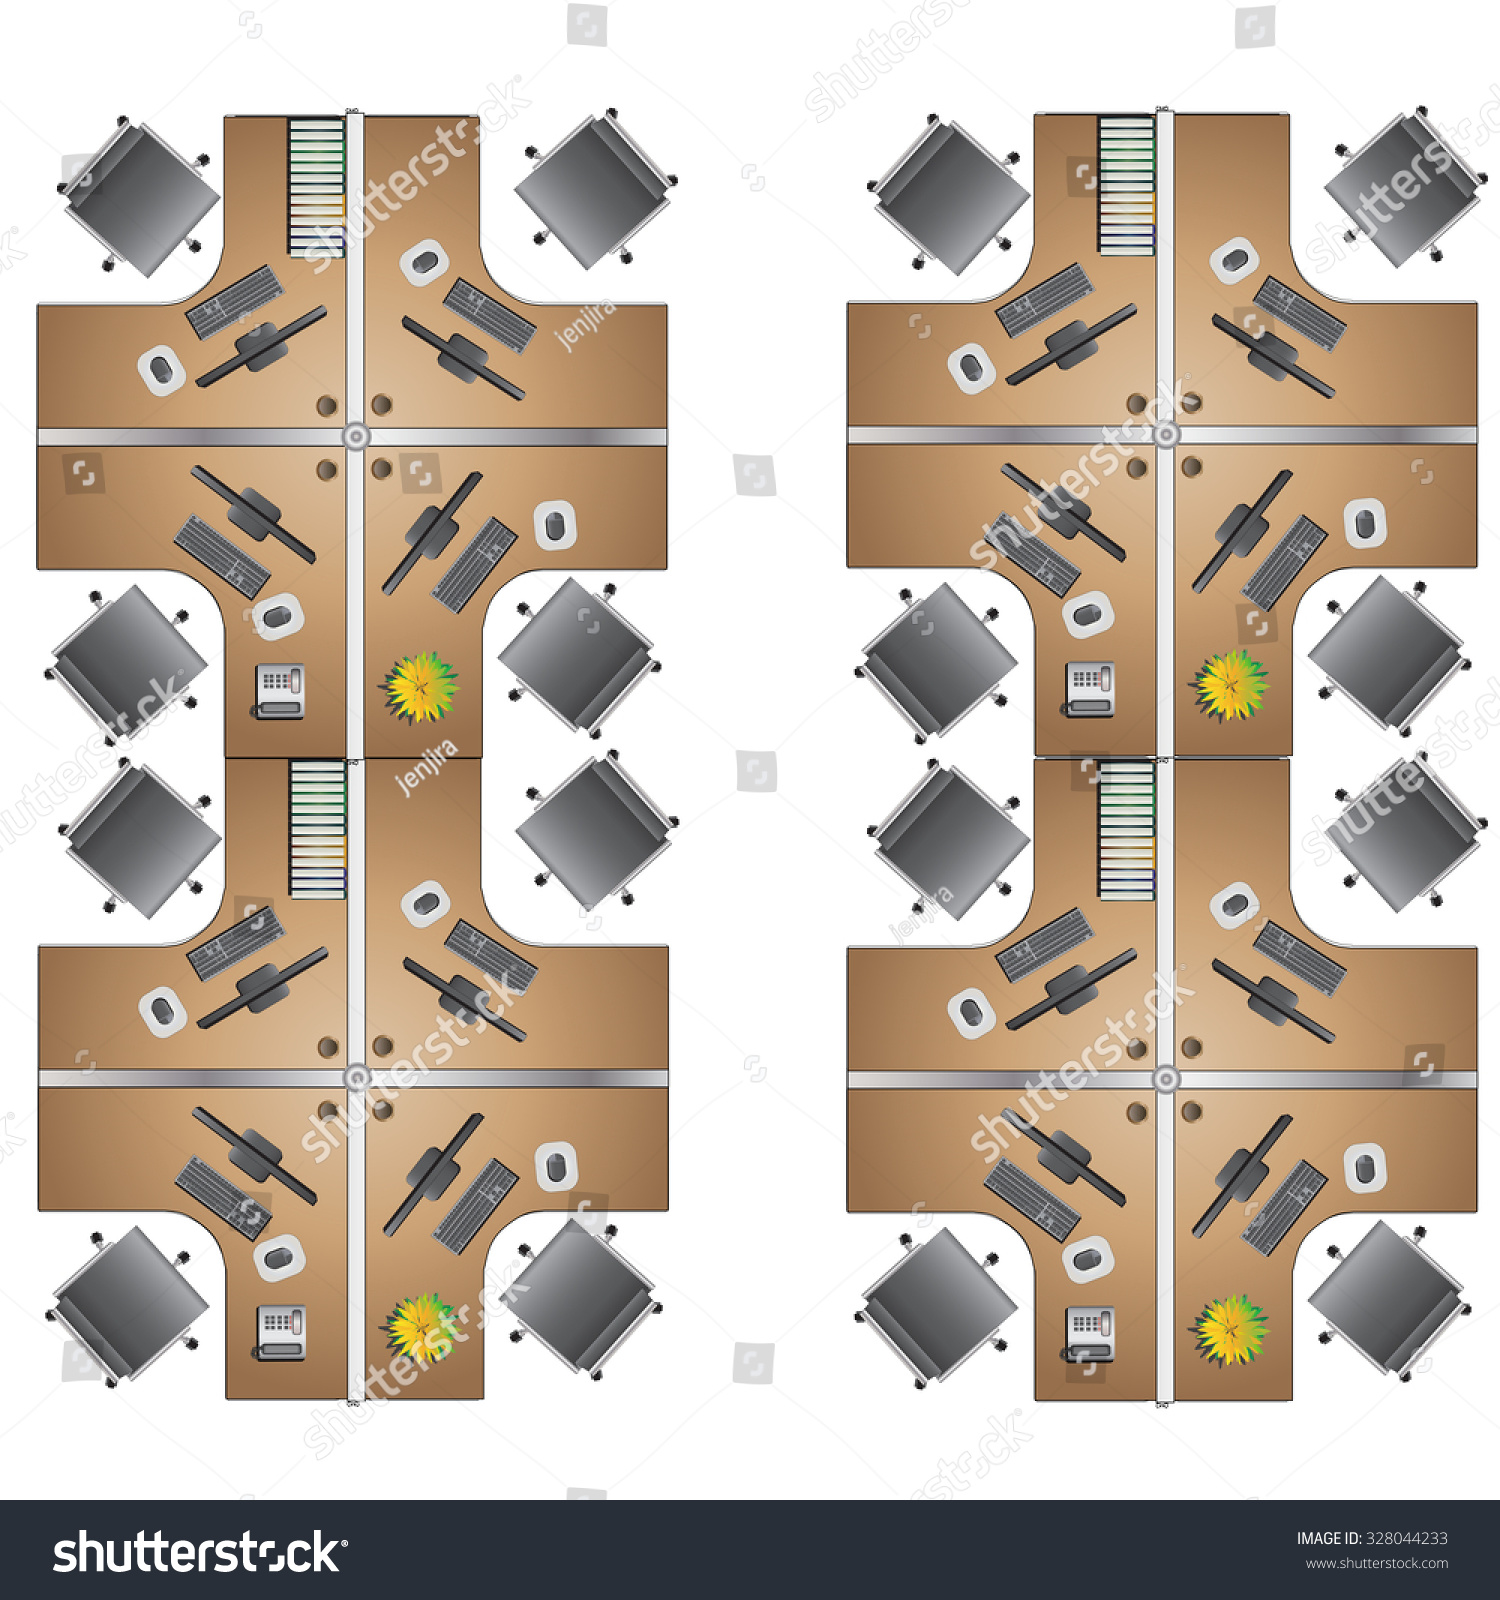 Office furniture top view - Office Furniture Workstation Top View For Interior Vector Illustration